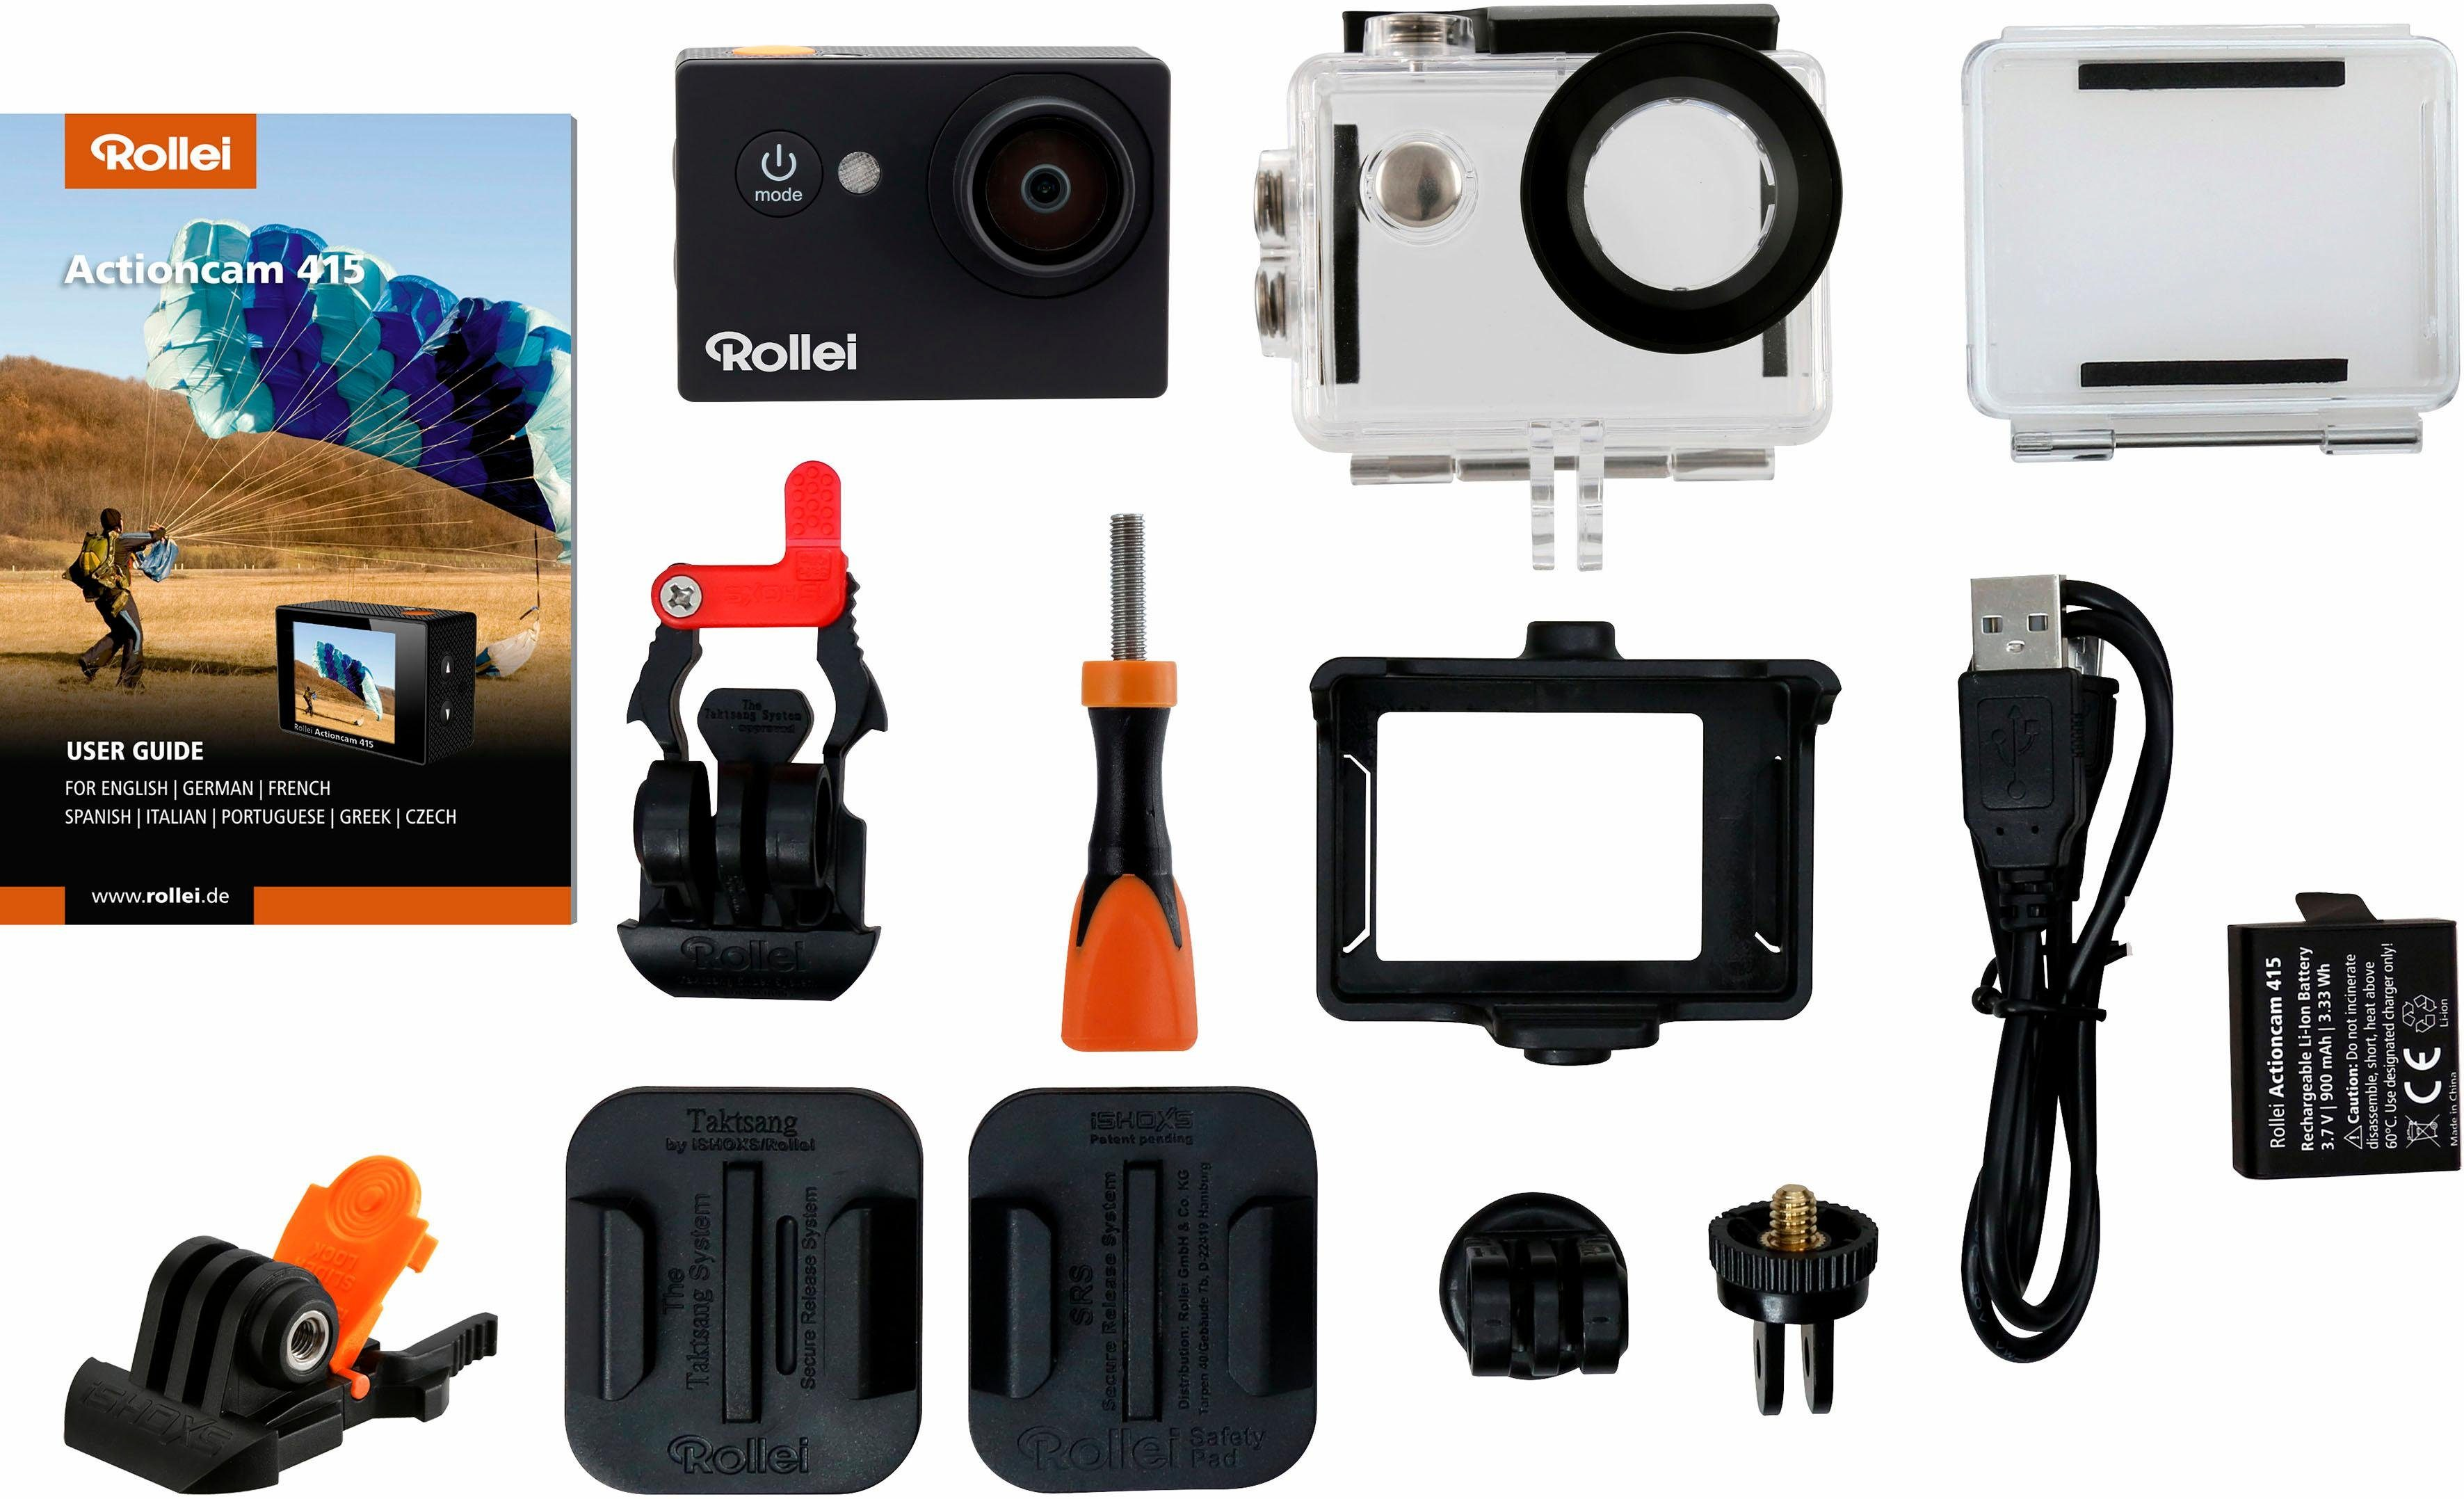 Rollei Actioncam 415 + 2. Akku 1080p (Full HD) Actioncam, WLAN